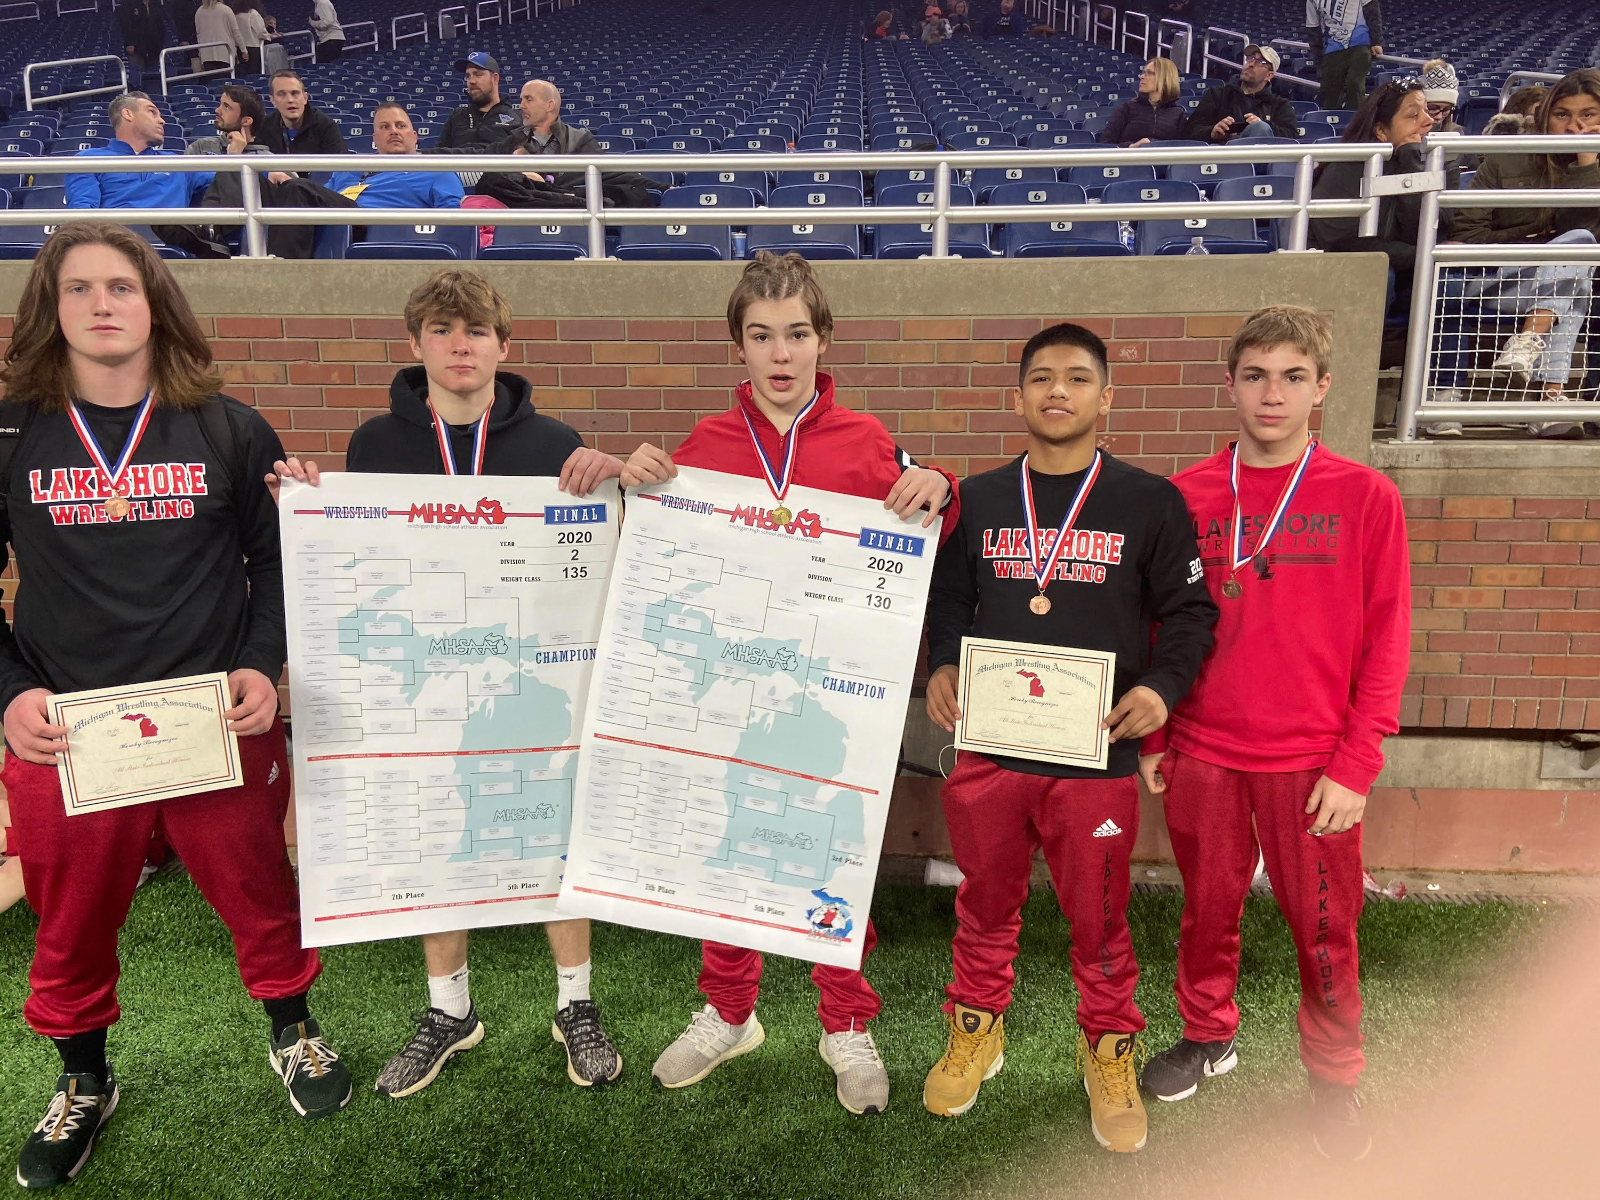 The Champs. Are. Here.: Recapping a special wrestling season